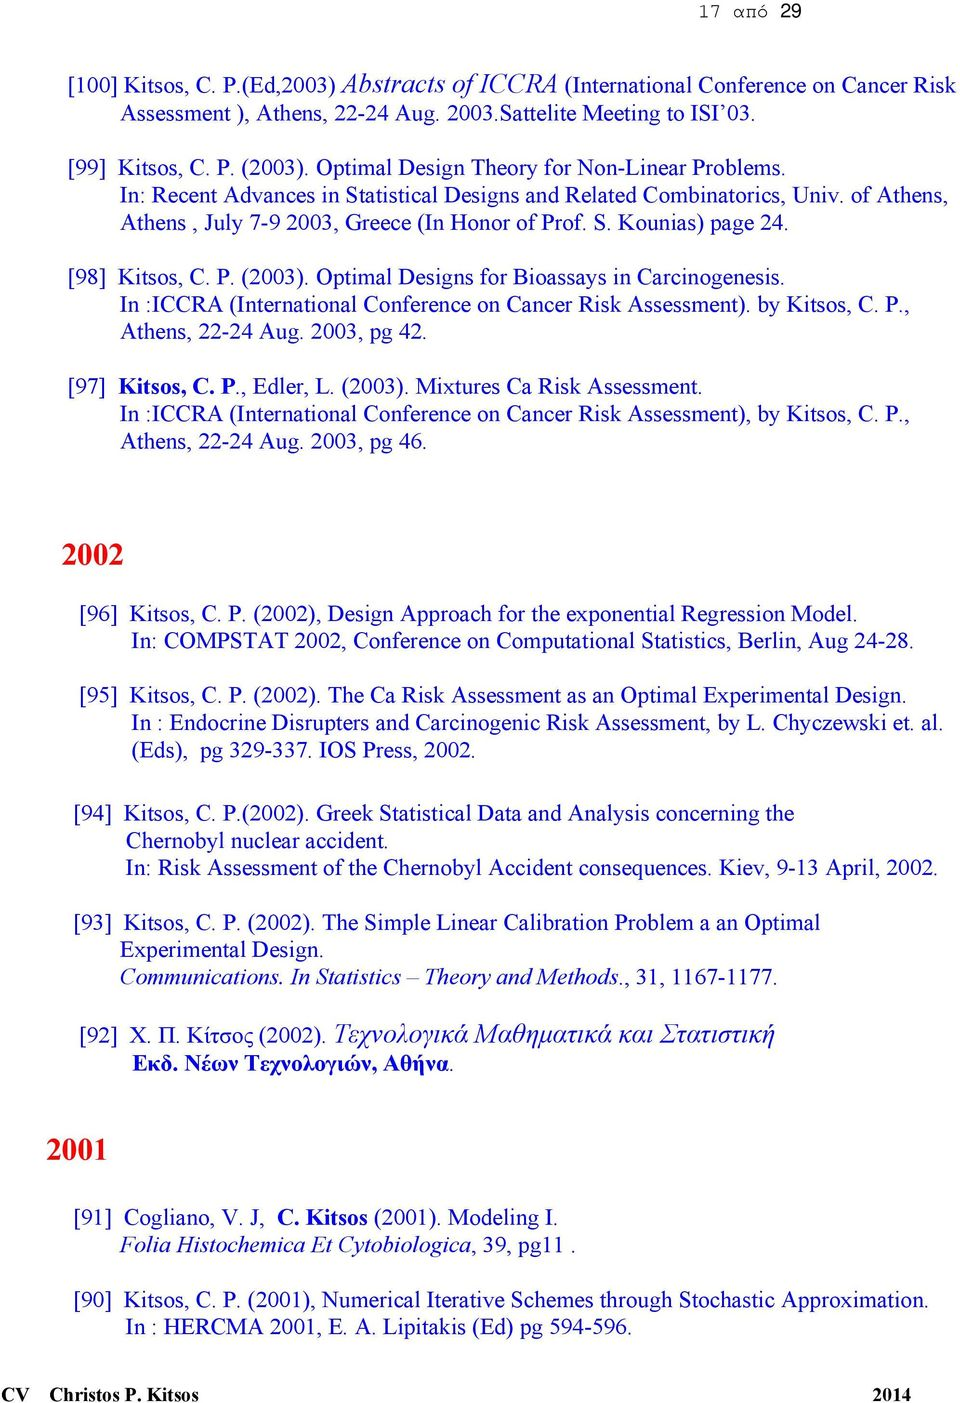 [98] Kitsos, C. P. (2003). Optimal Designs for Bioassays in Carcinogenesis. In :ICCRA (International Conference on Cancer Risk Assessment). by Kitsos, C. P., Athens, 22-24 Aug. 2003, pg 42.